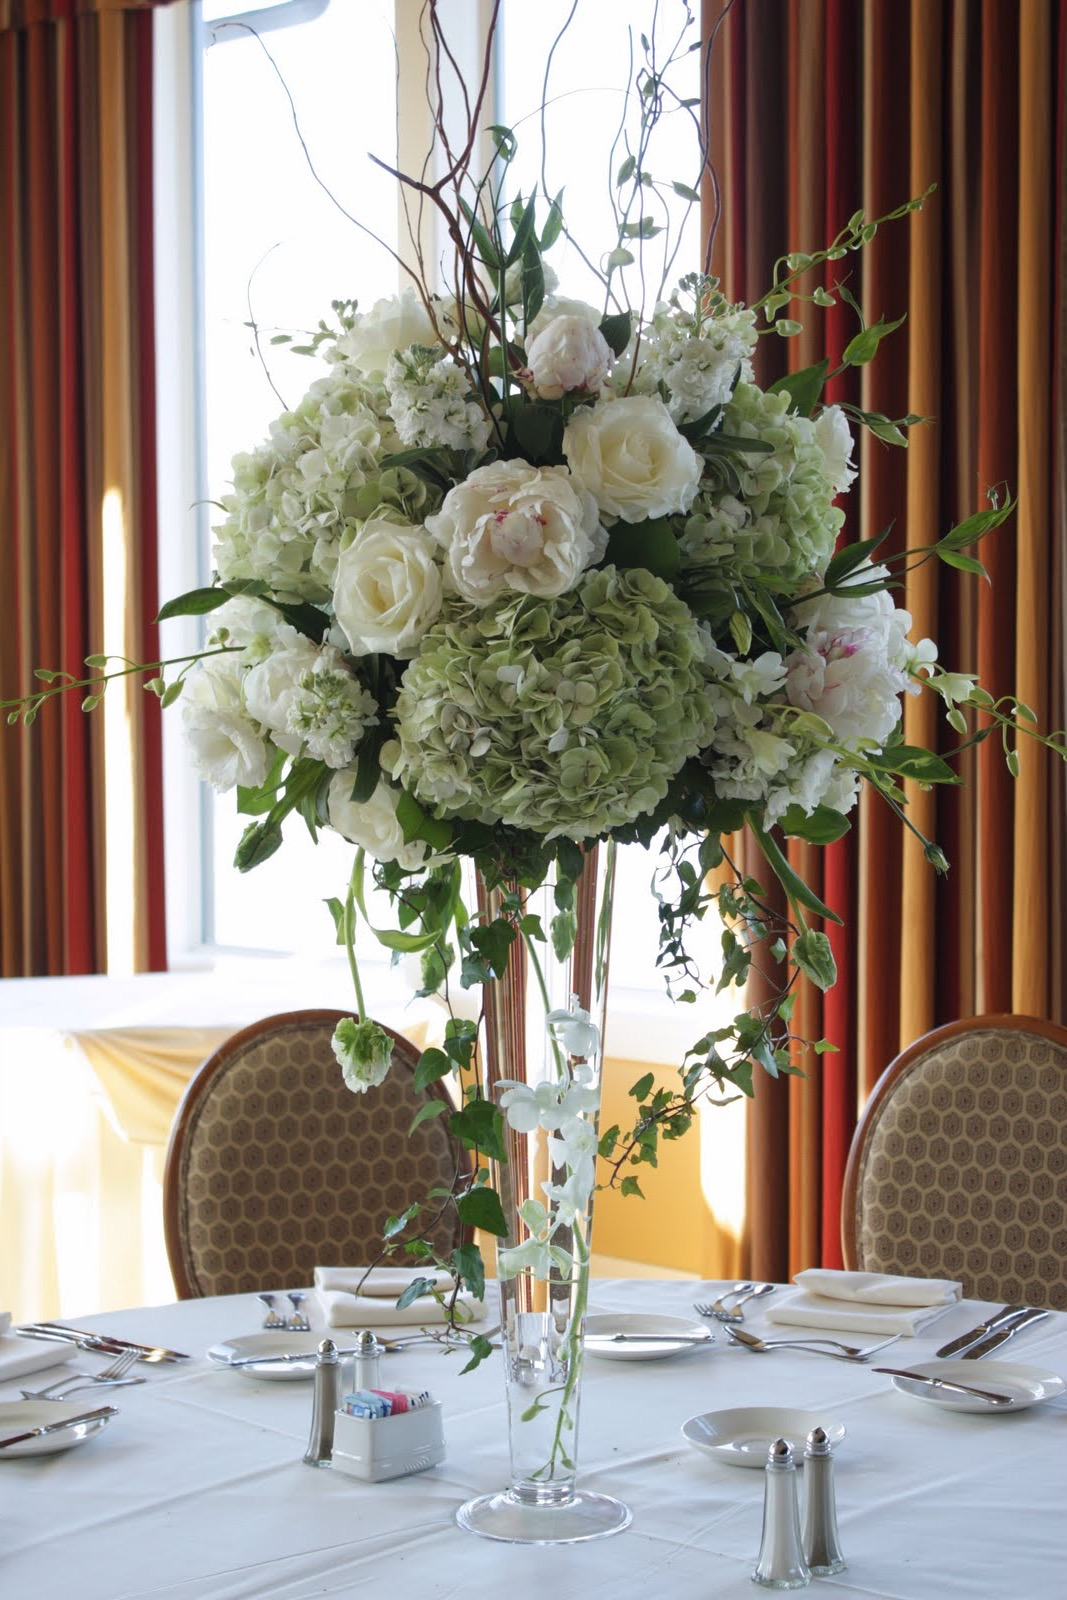 Beauty Tall White Hydrangea And Rose Wedding Centerpieces (View 21 of 30)